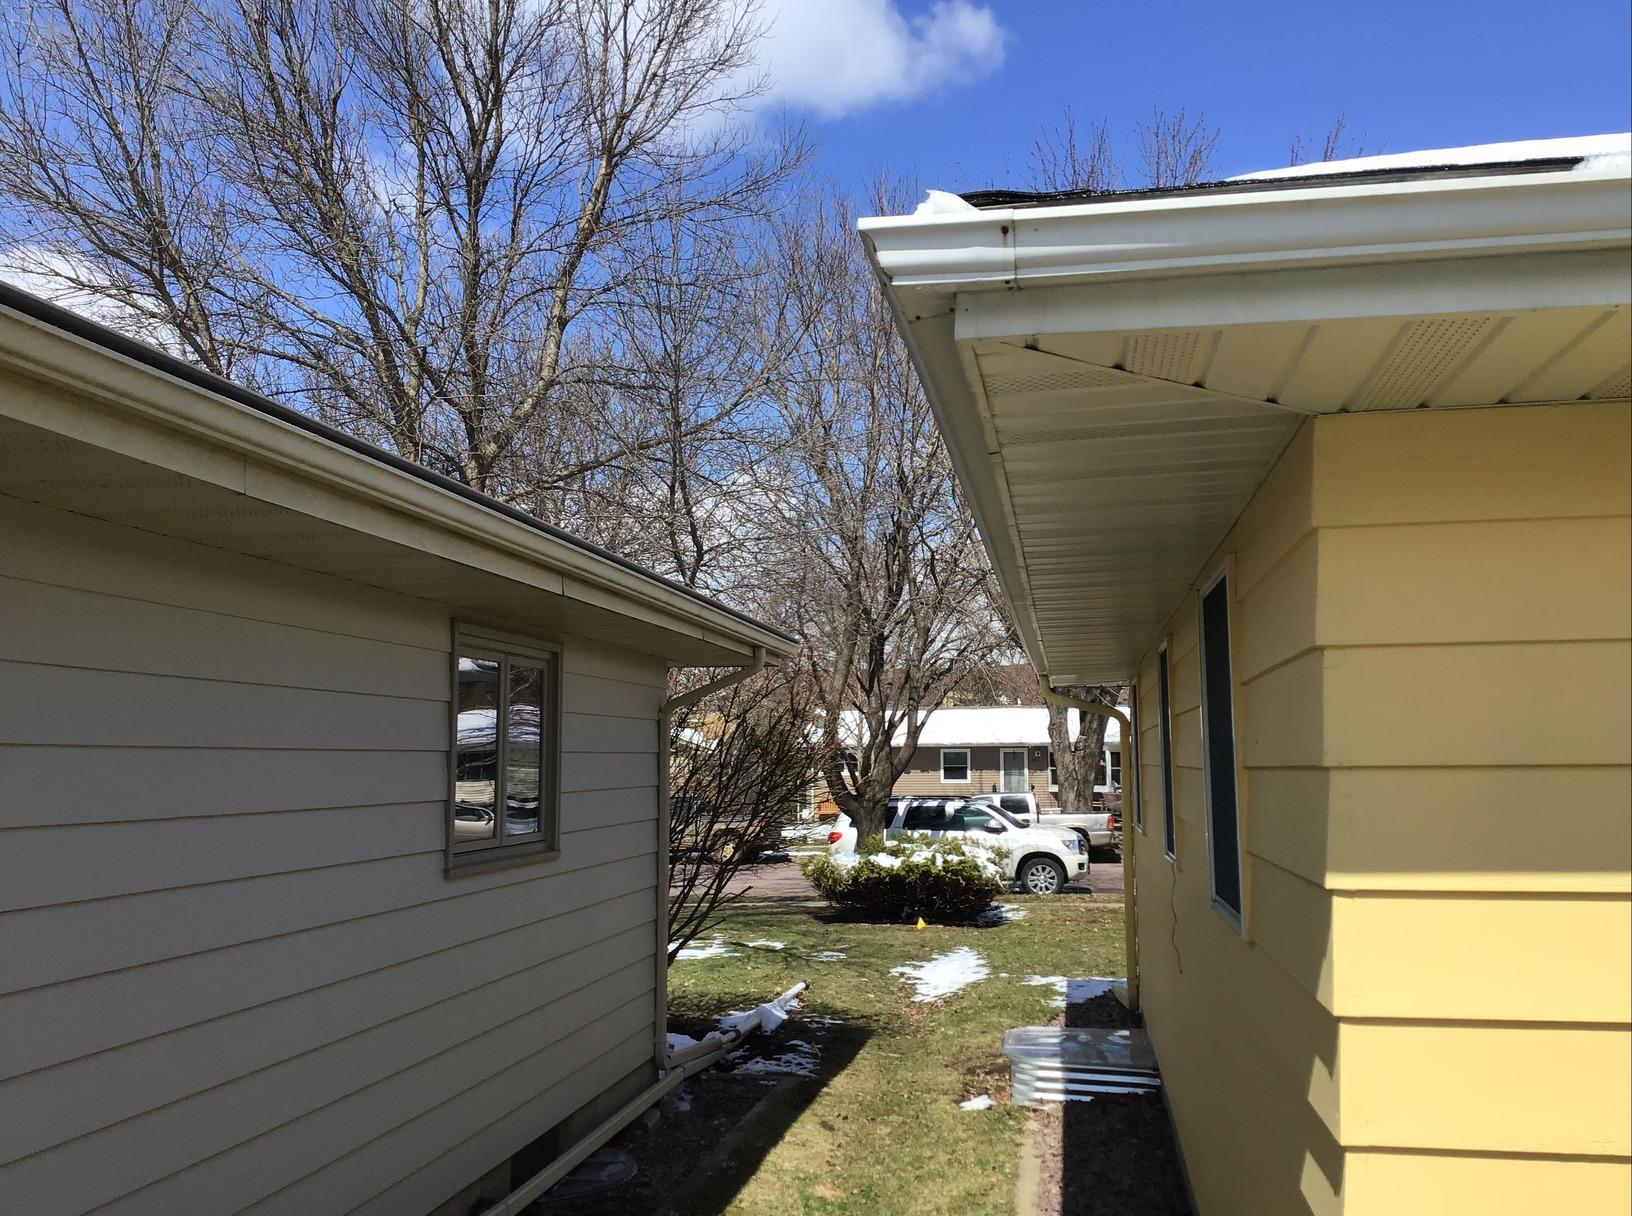 LeafGuard Before & After - 1427 Heinenhill St. New Ulm Minnesota 56073 - Before Photo